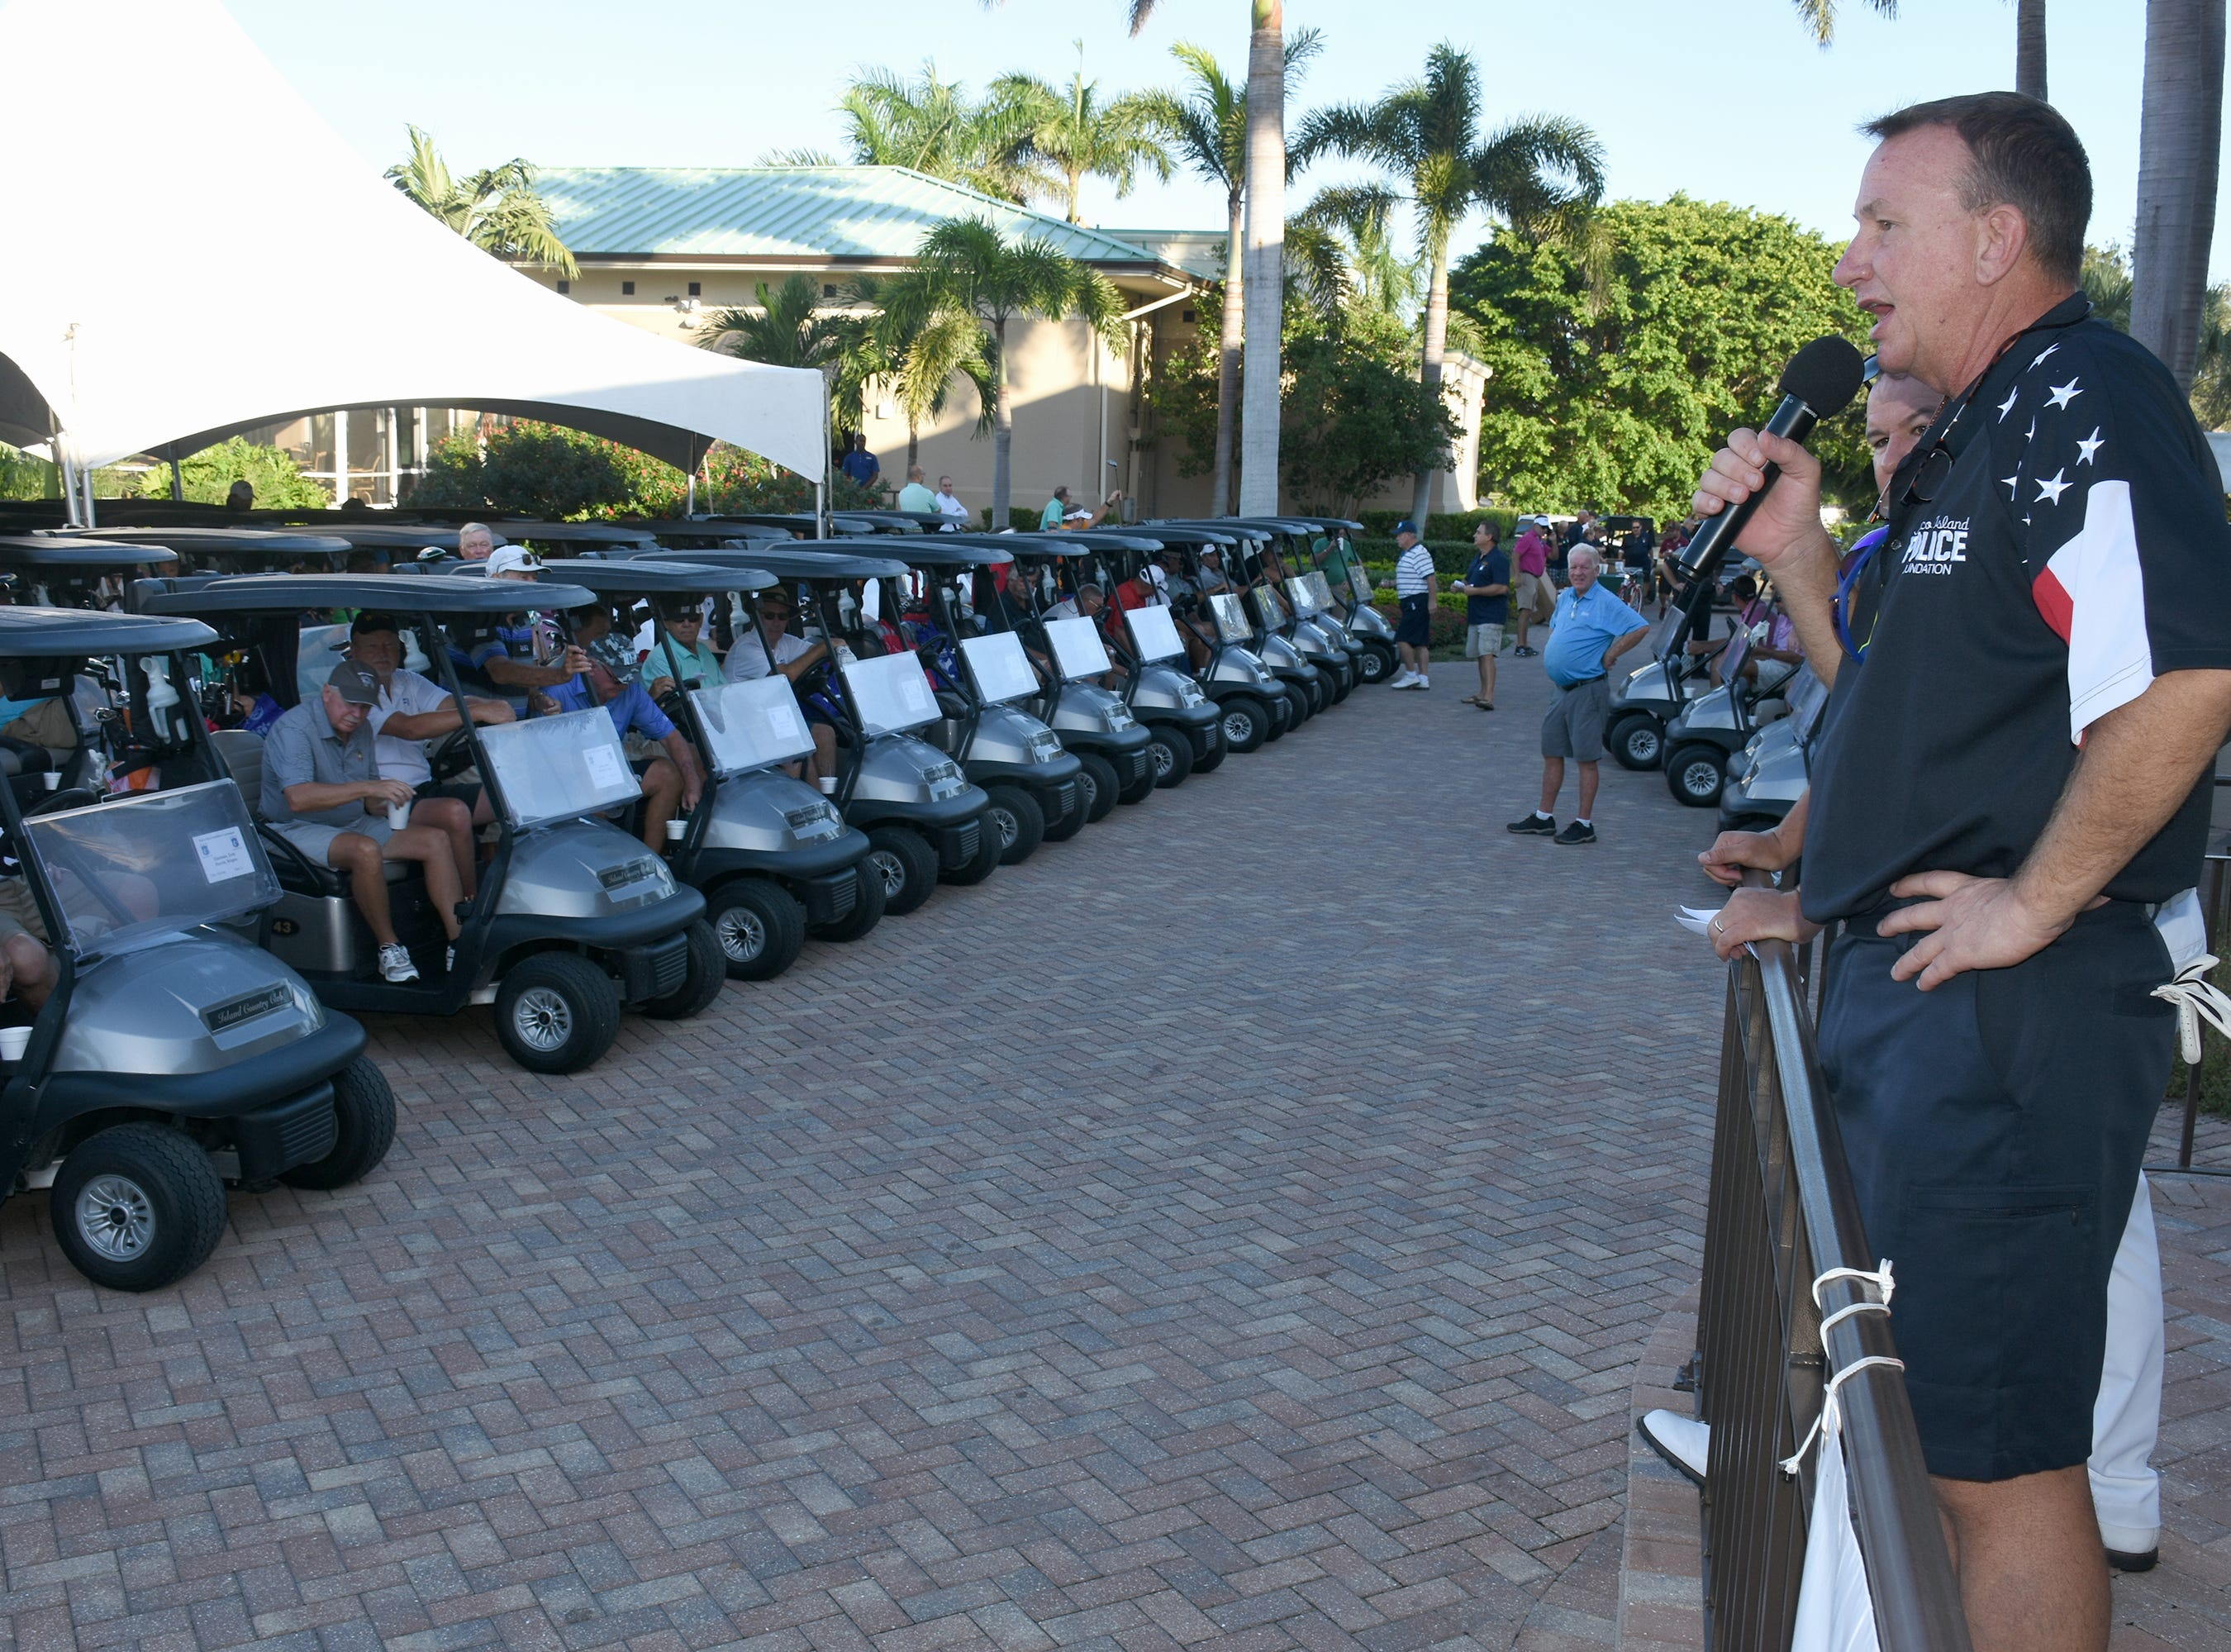 The Marco Police Foundation held their annual golf event Saturday morning on the Island Country Club course.